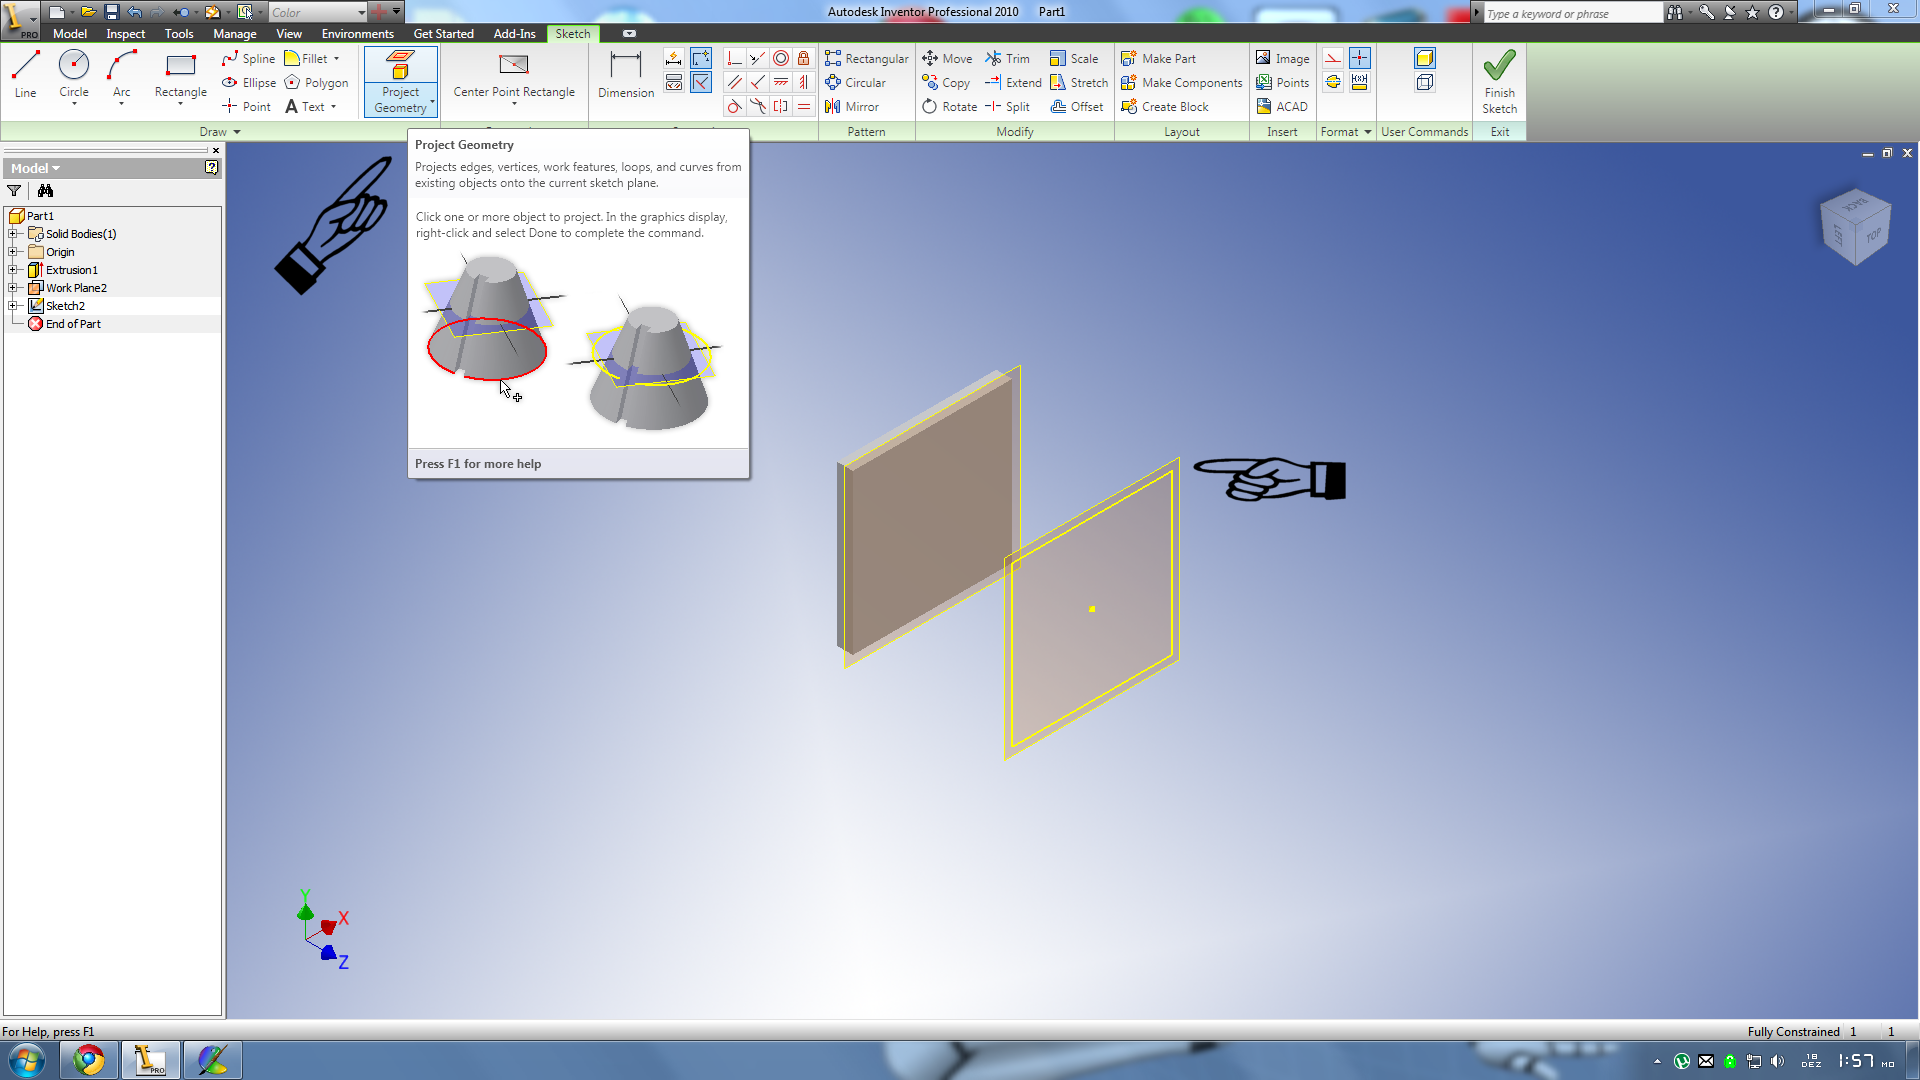 How to offset in Autodesk inventor | GrabCAD Questions